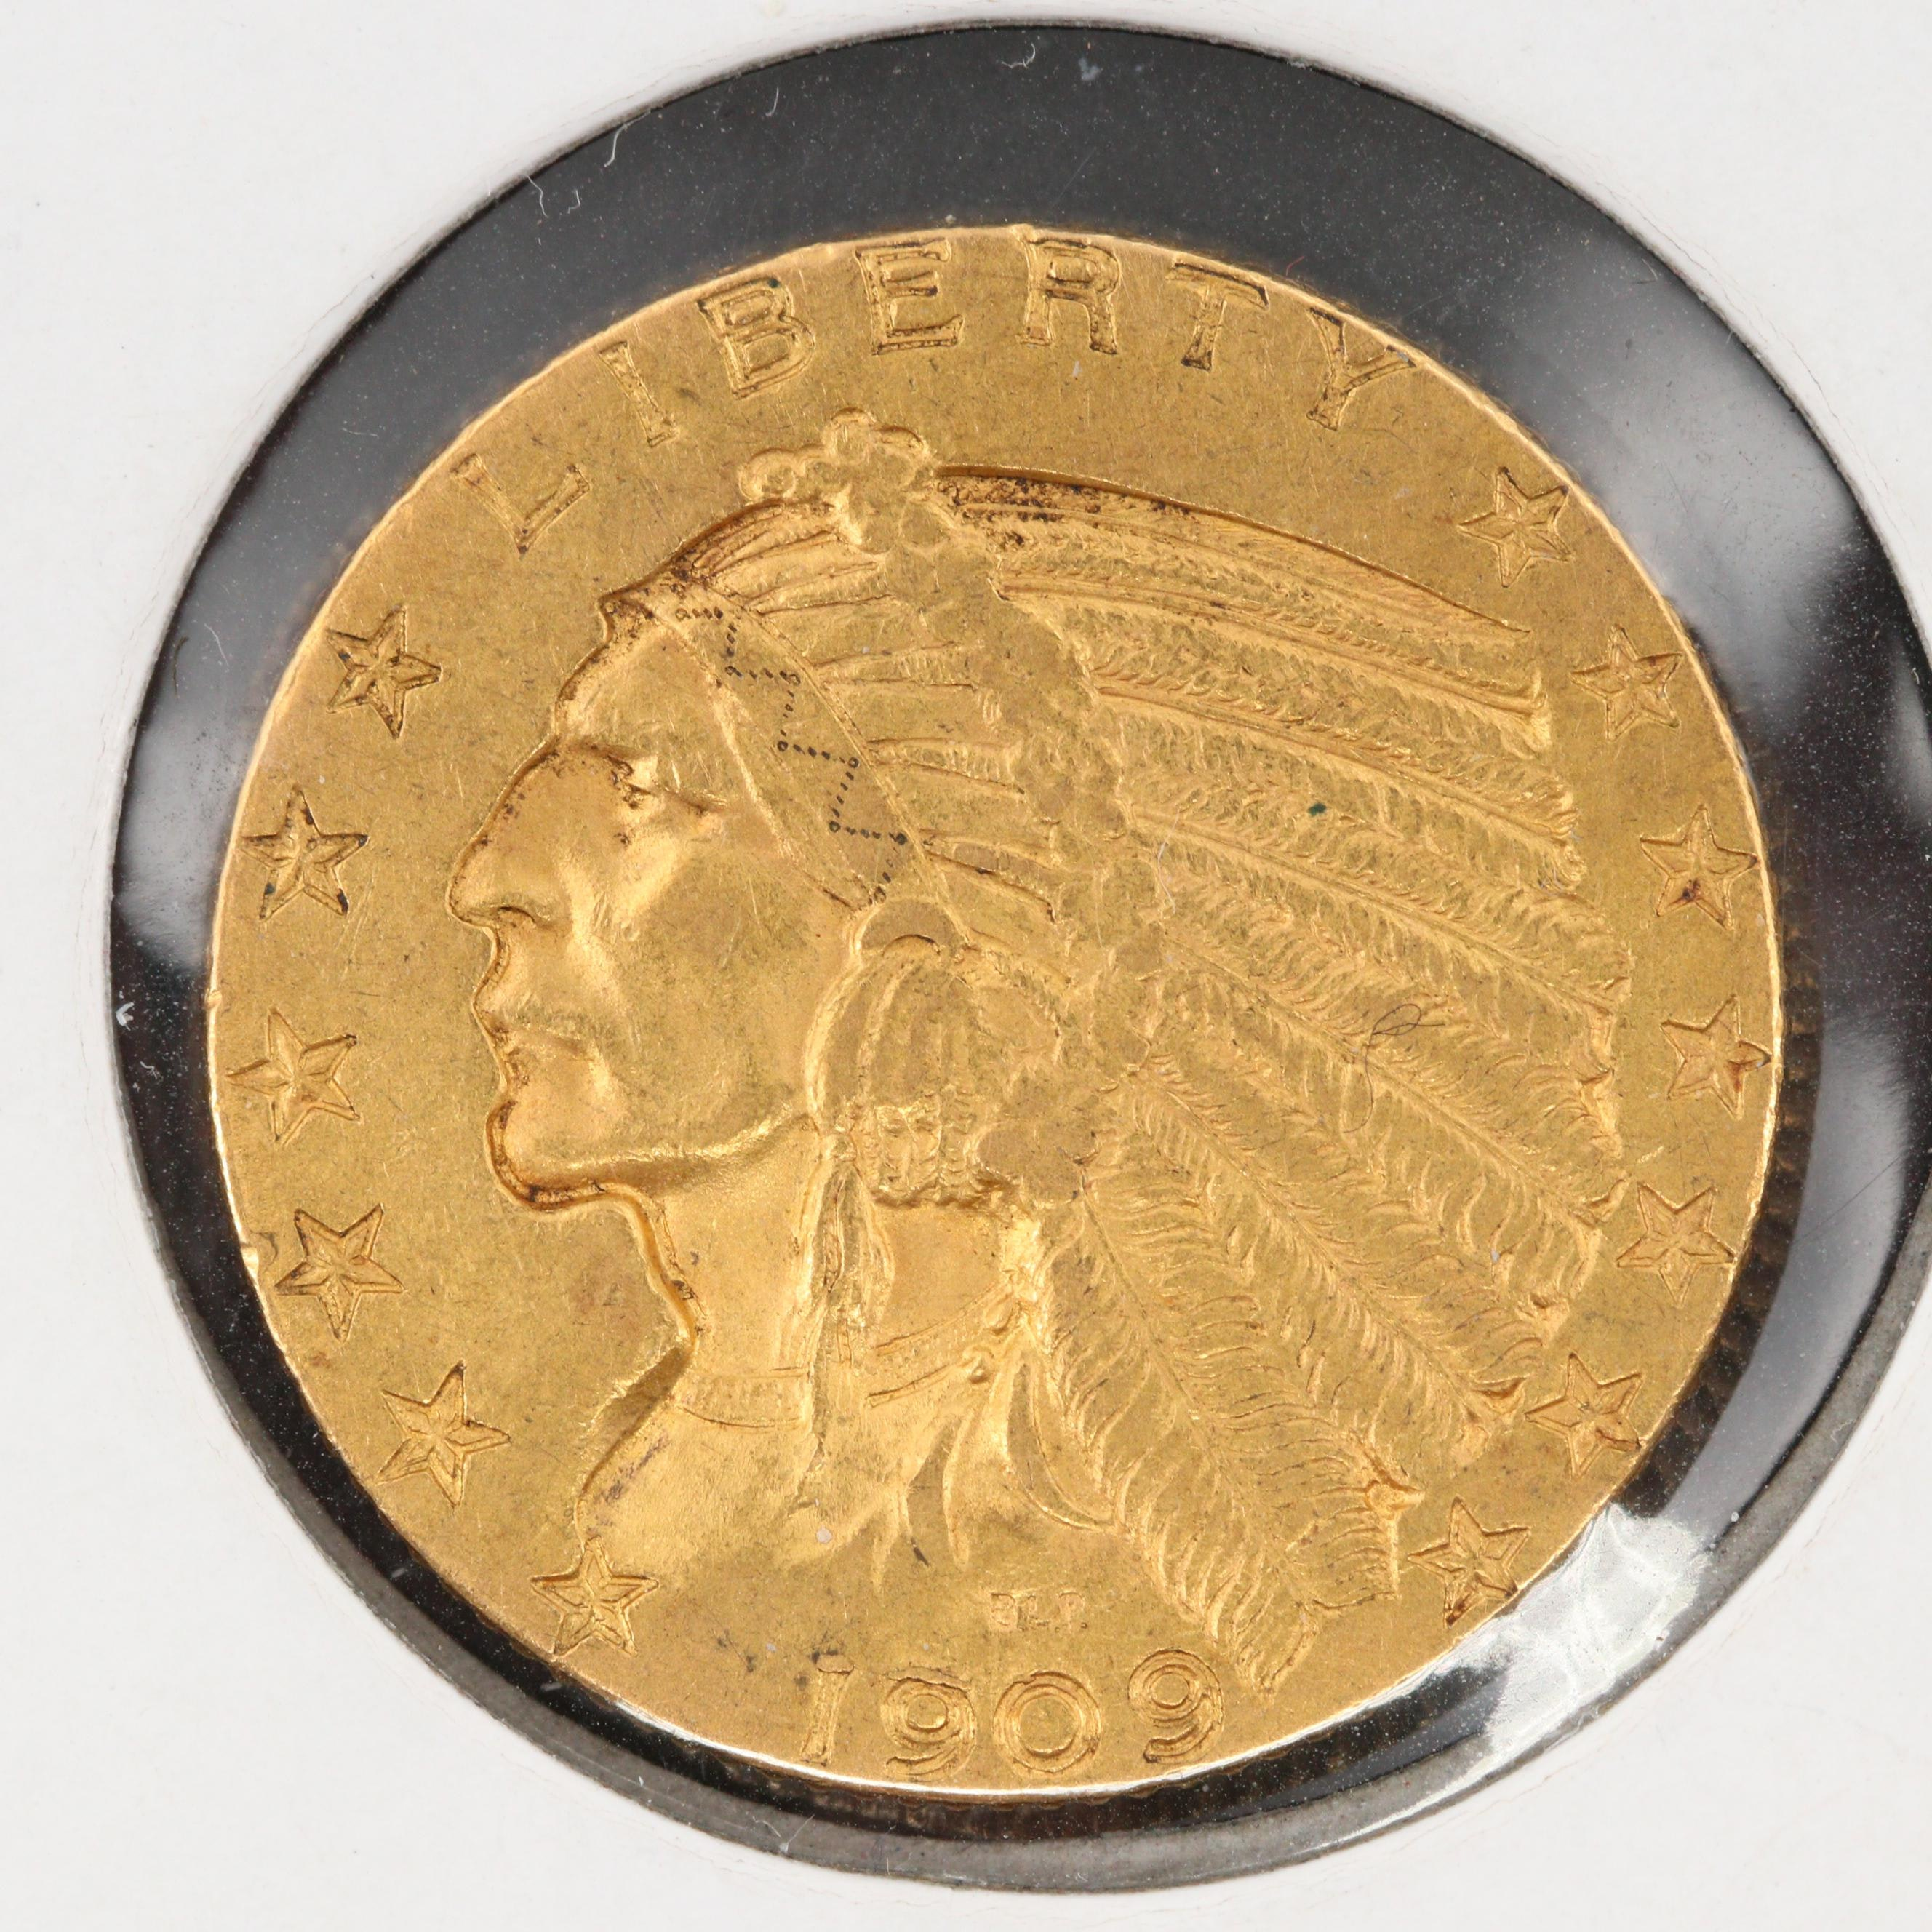 1909 Indian Head $5 Gold Coin